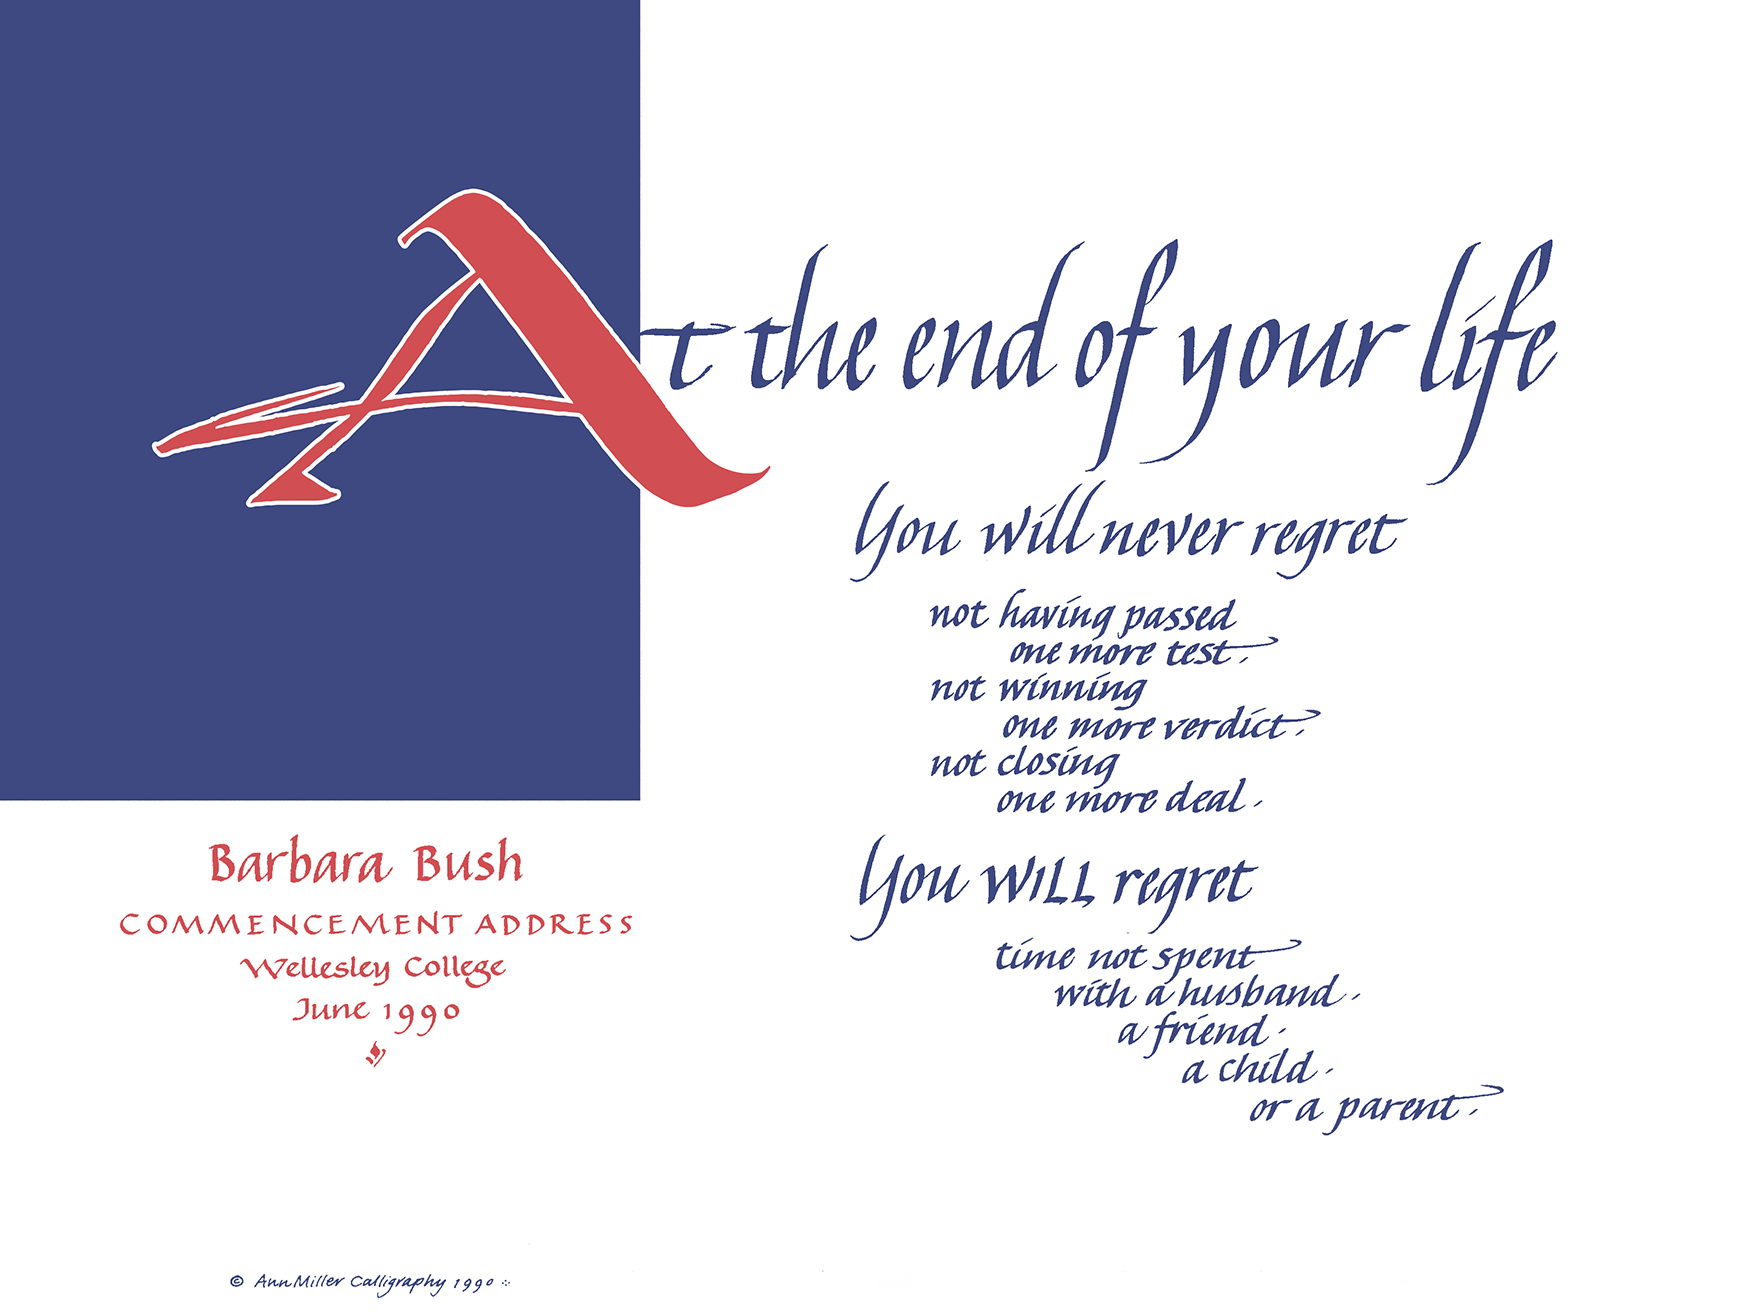 No Regrets - Barbara Bush Speech